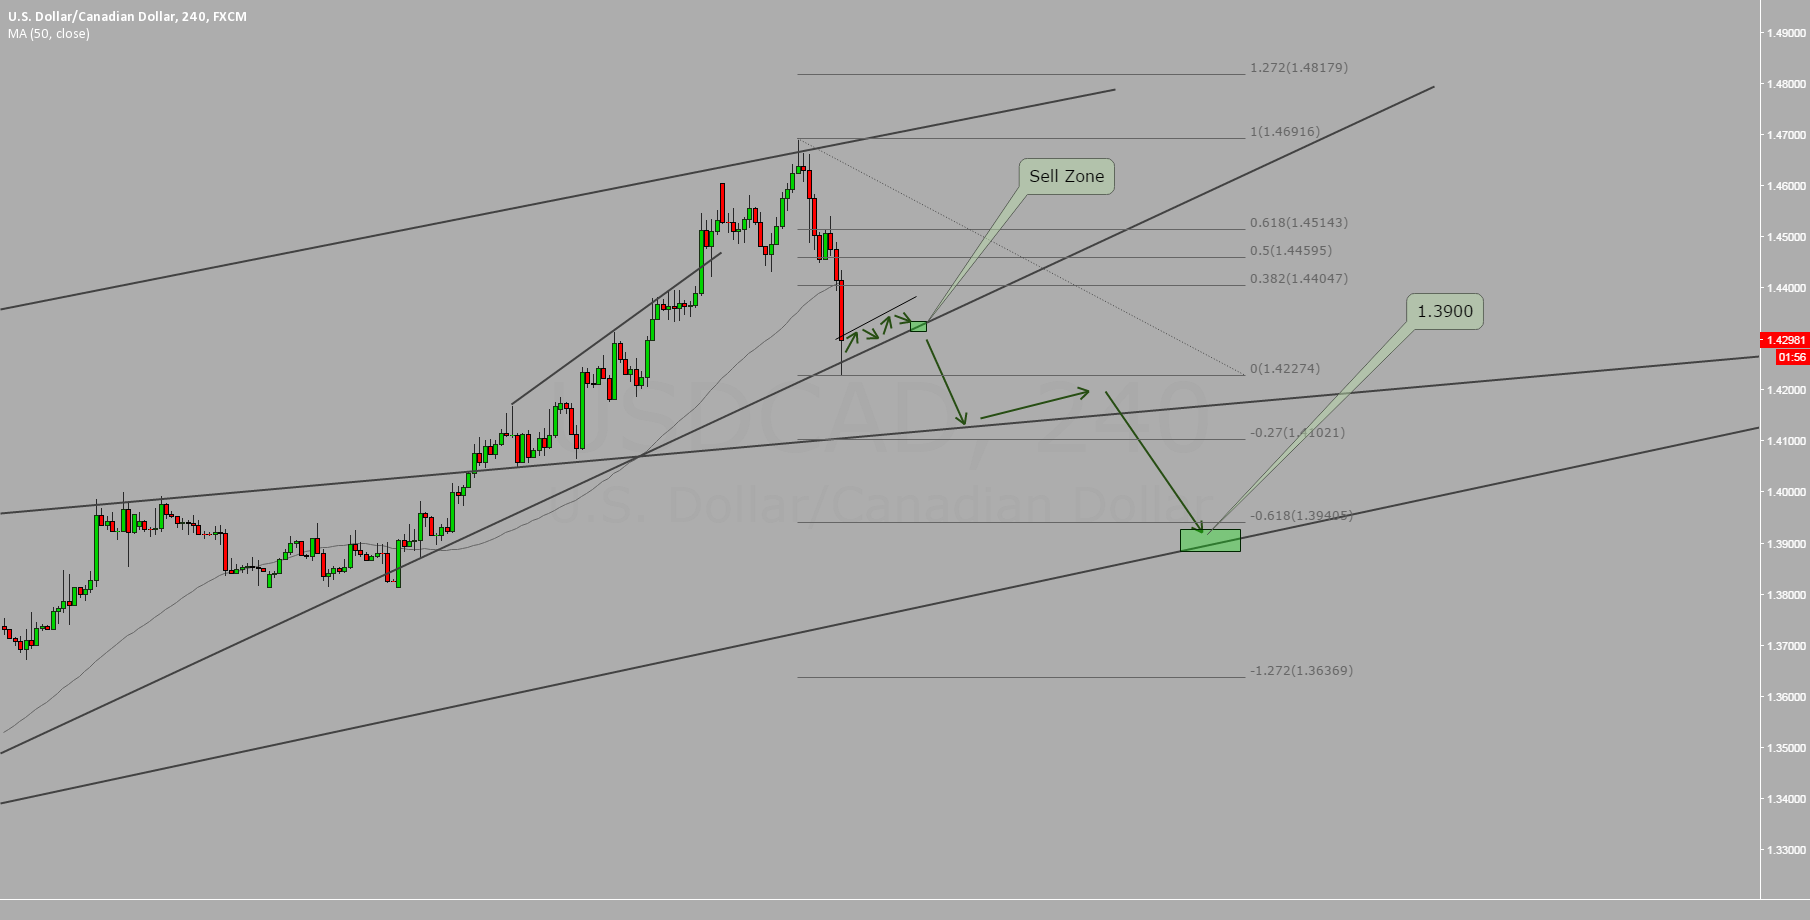 USDCAD Continuation of the Impulse